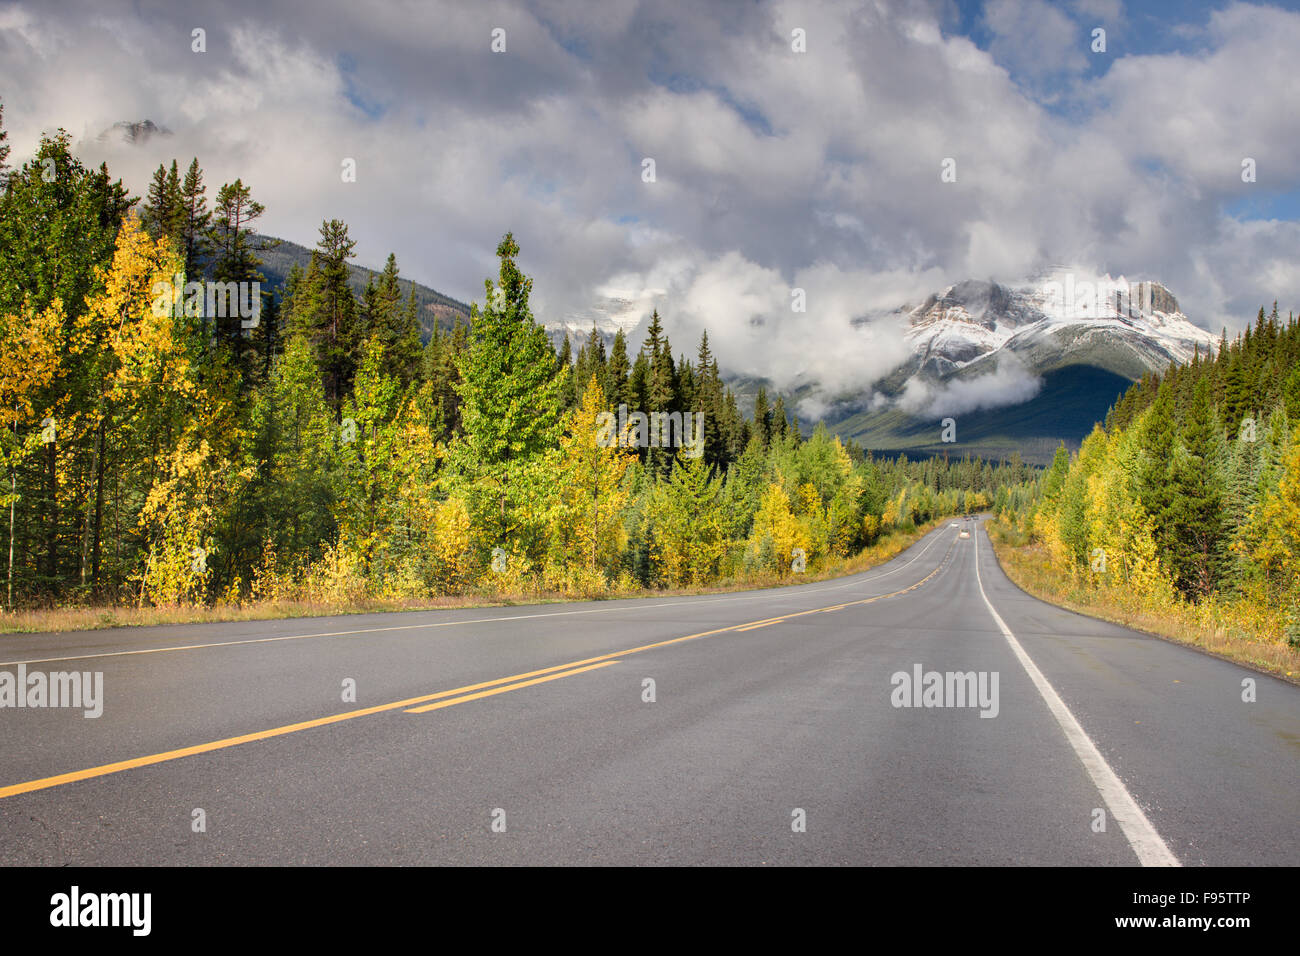 Icefields Parkway (Highway 93) near Rampart Creek, Banff National Park, Alberta, Canada - Stock Image